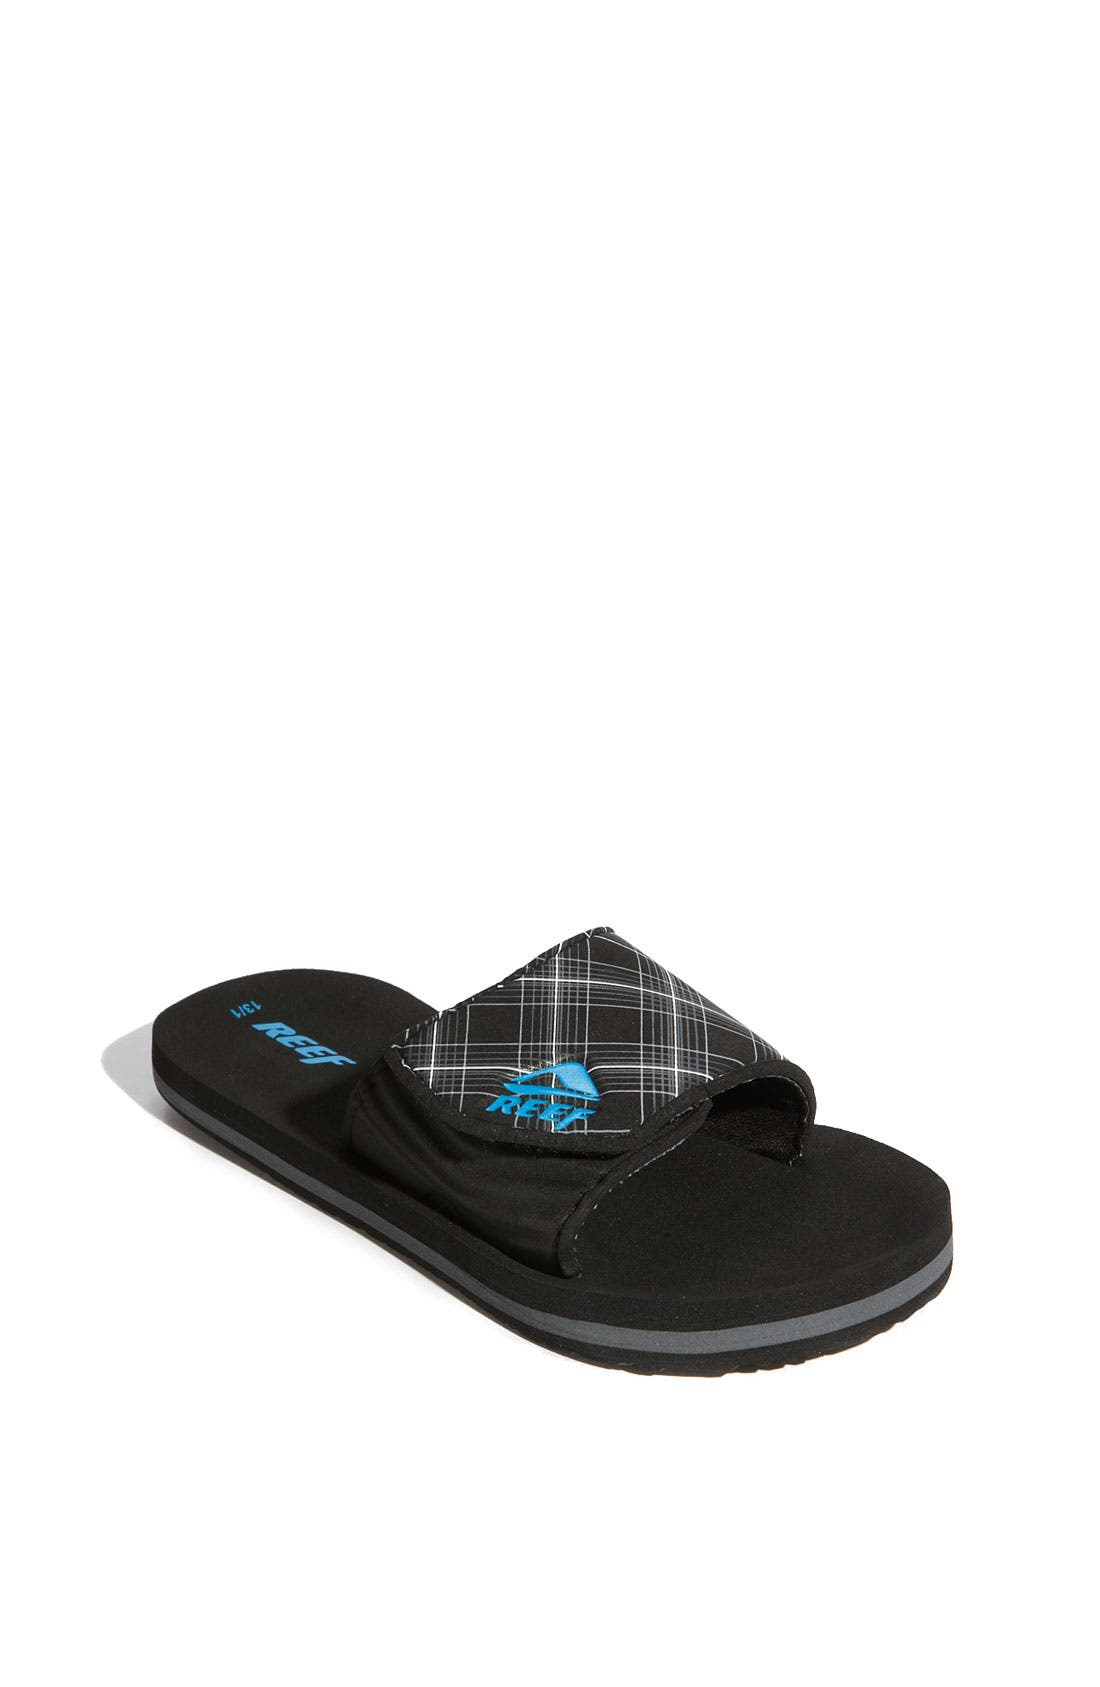 Alternate Image 1 Selected - Reef 'Grom Ahi' Slide Sandal (Walker, Toddler, Little Kid & Big Kid)